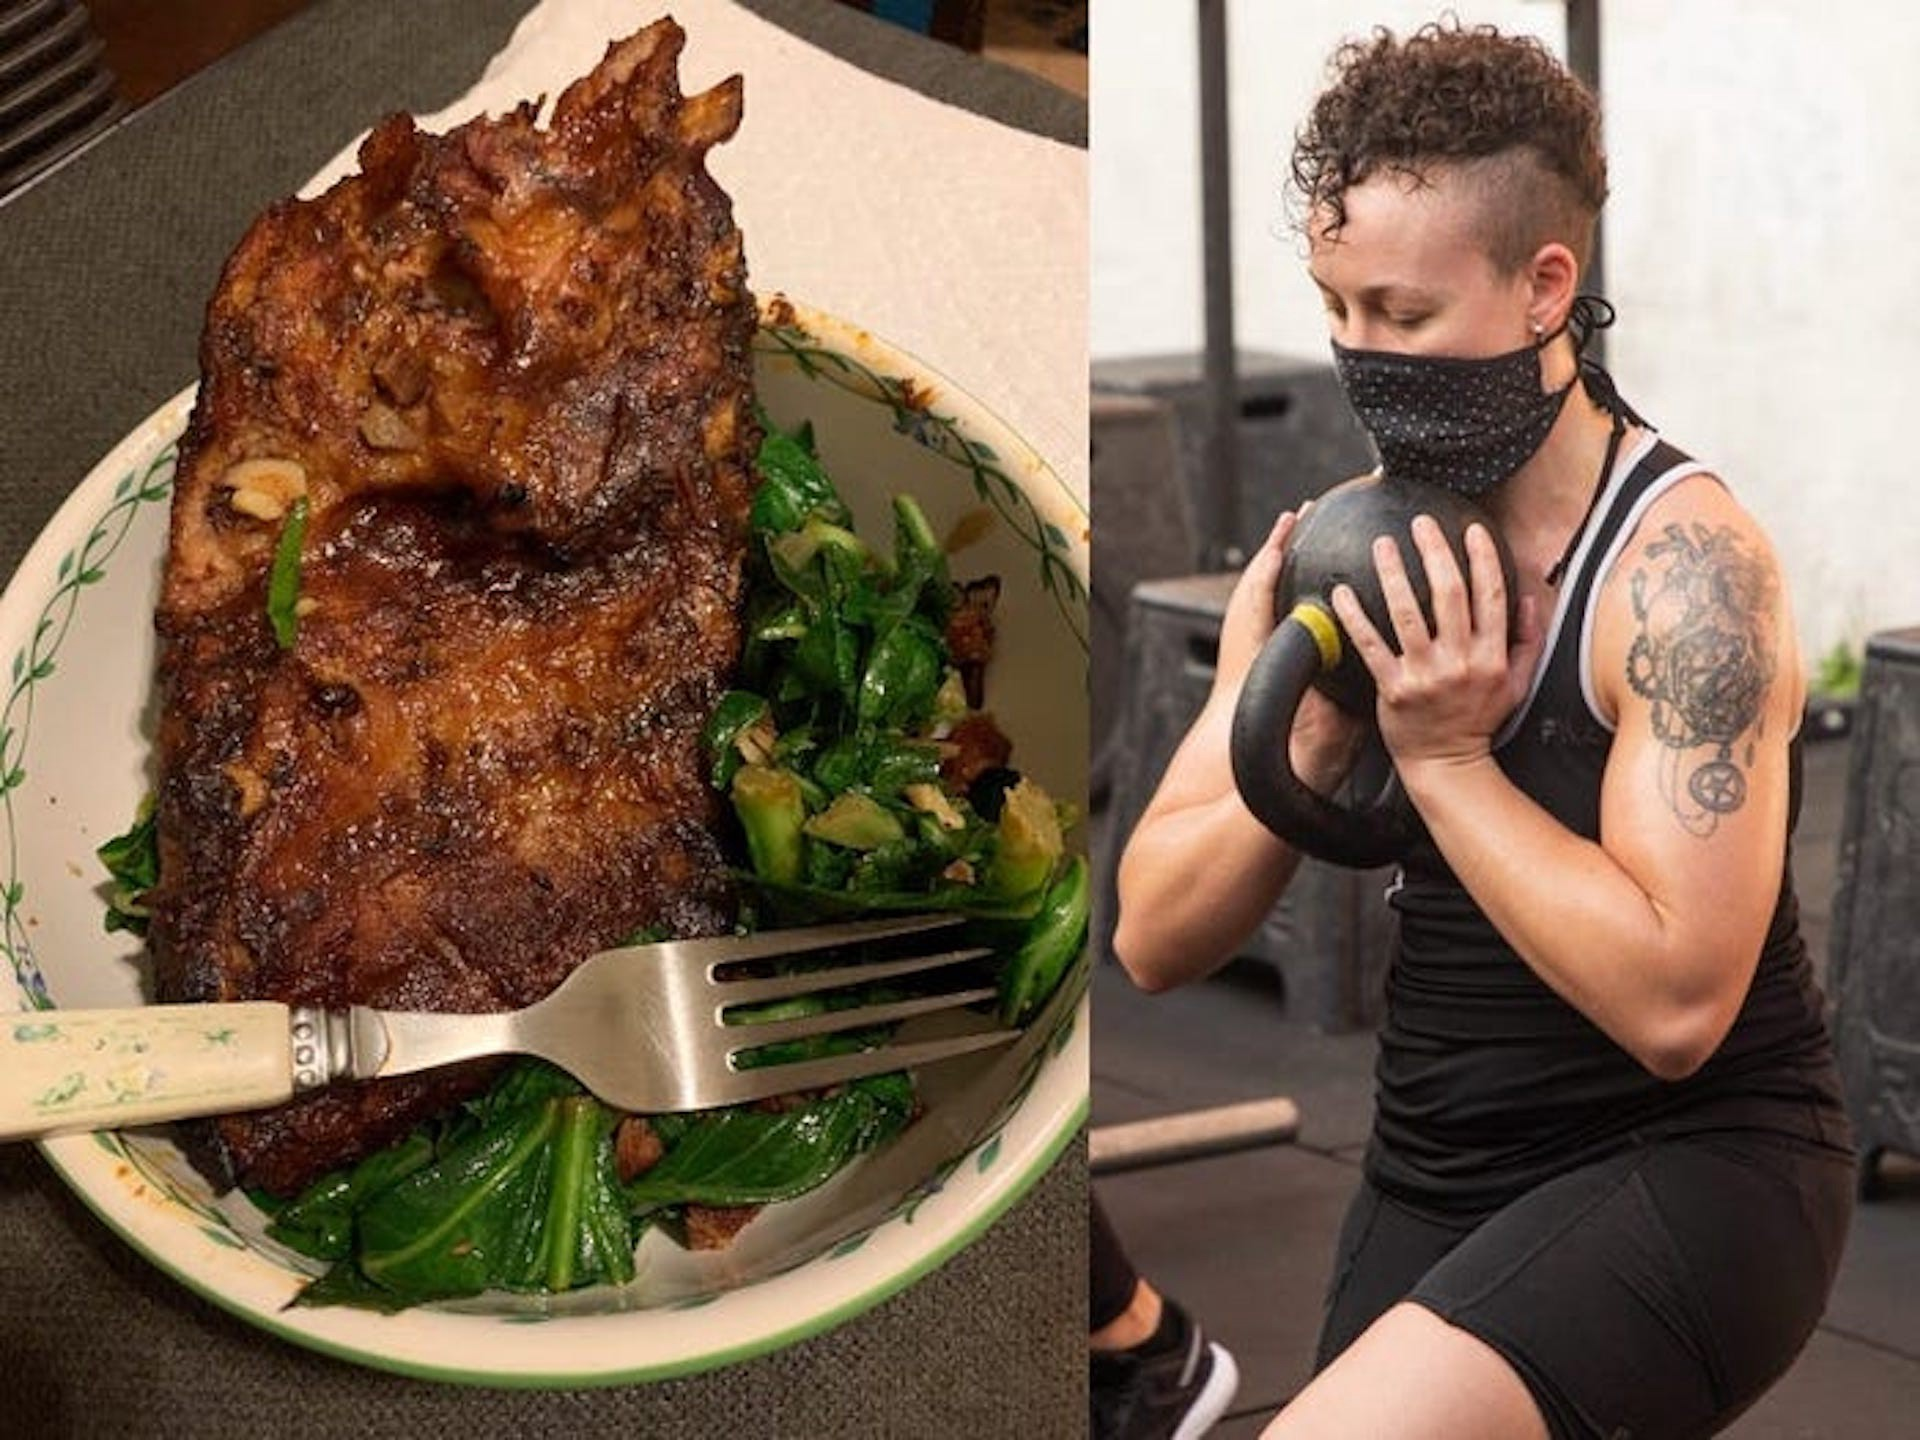 Ribs and collard greens as a low-carb dinner (left), and the author working out (right).